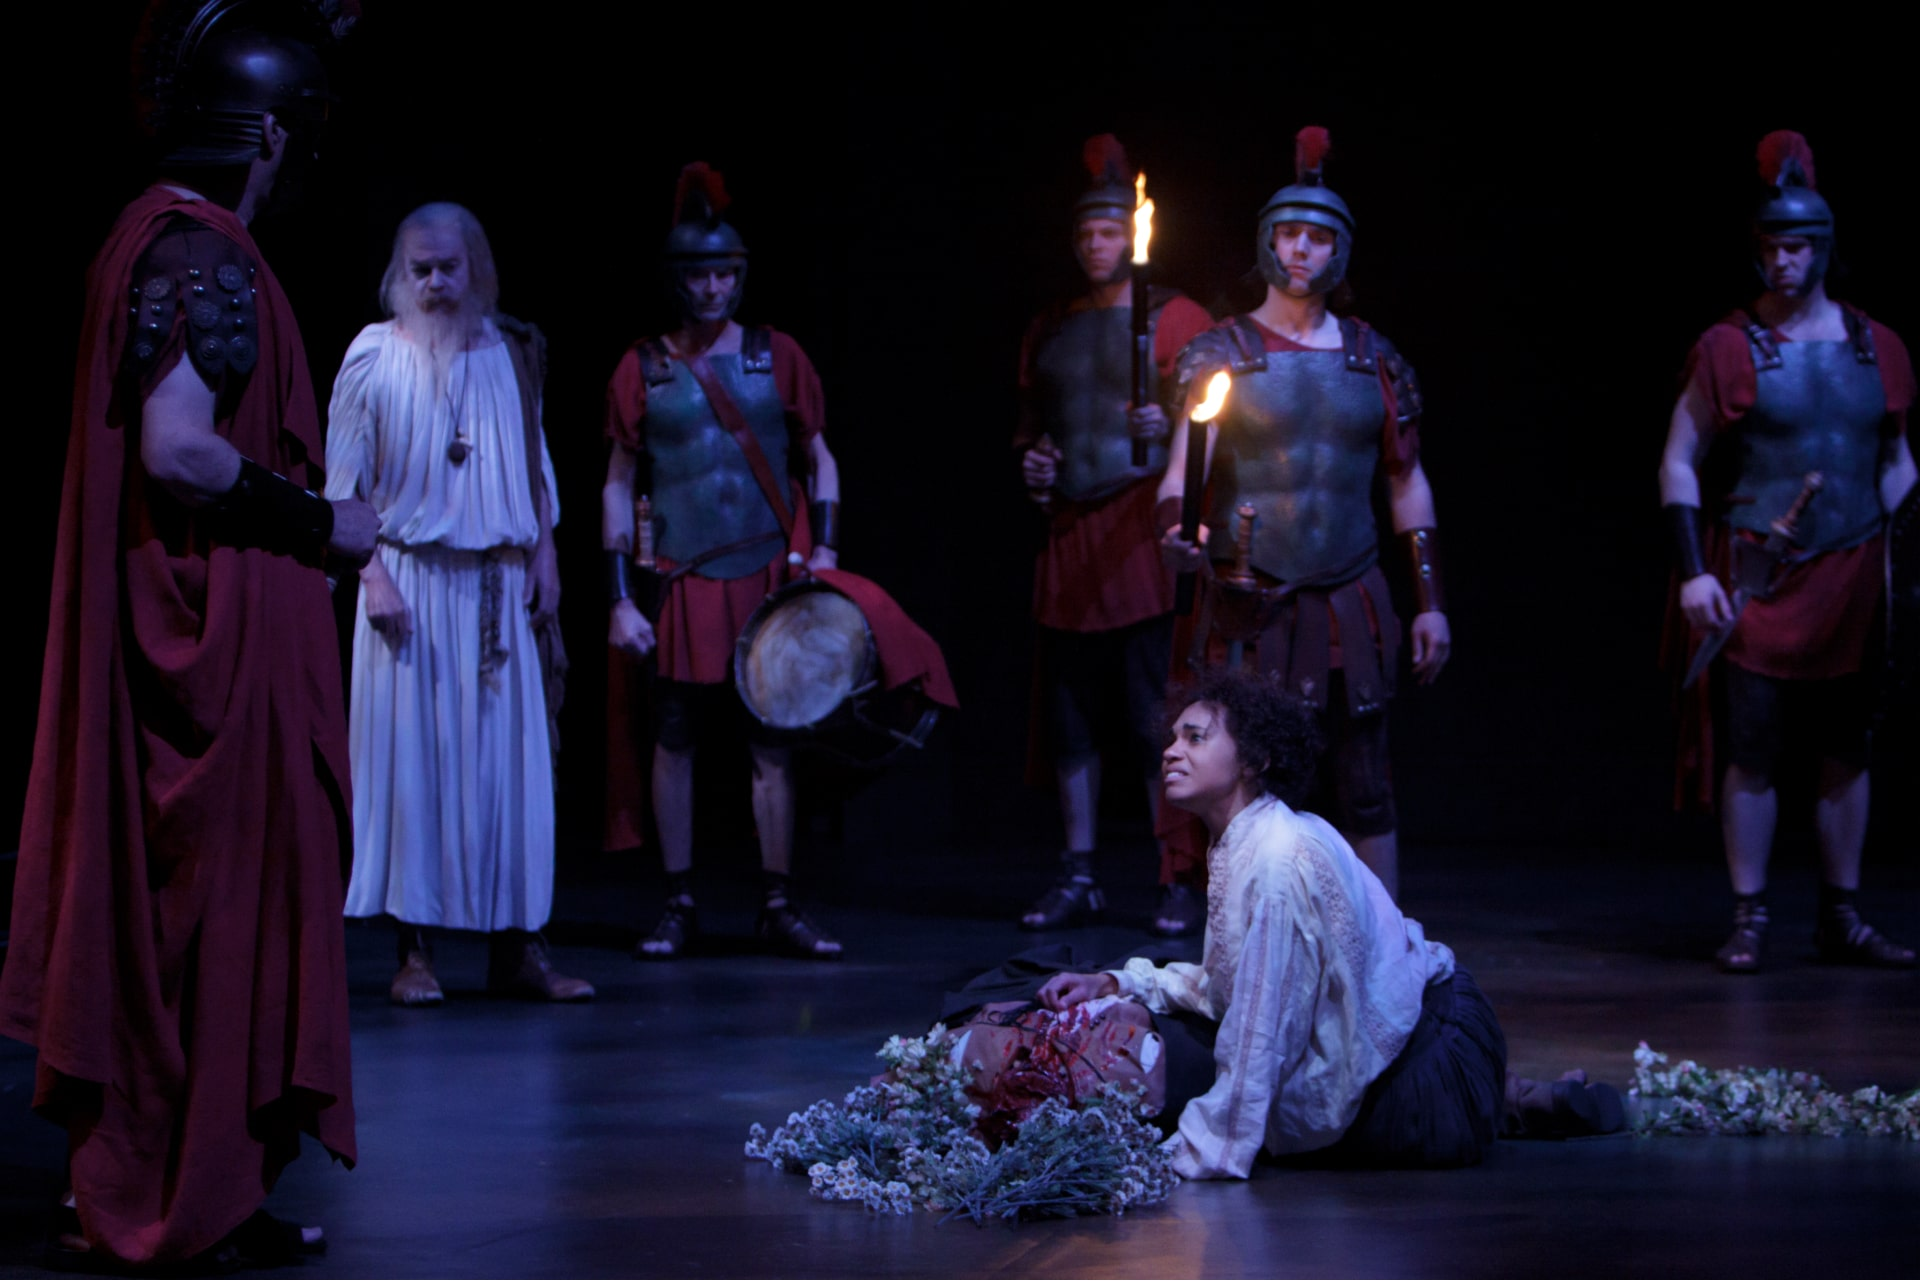 Woman cries over dead body surrounded by roman soldiers in moonlight.